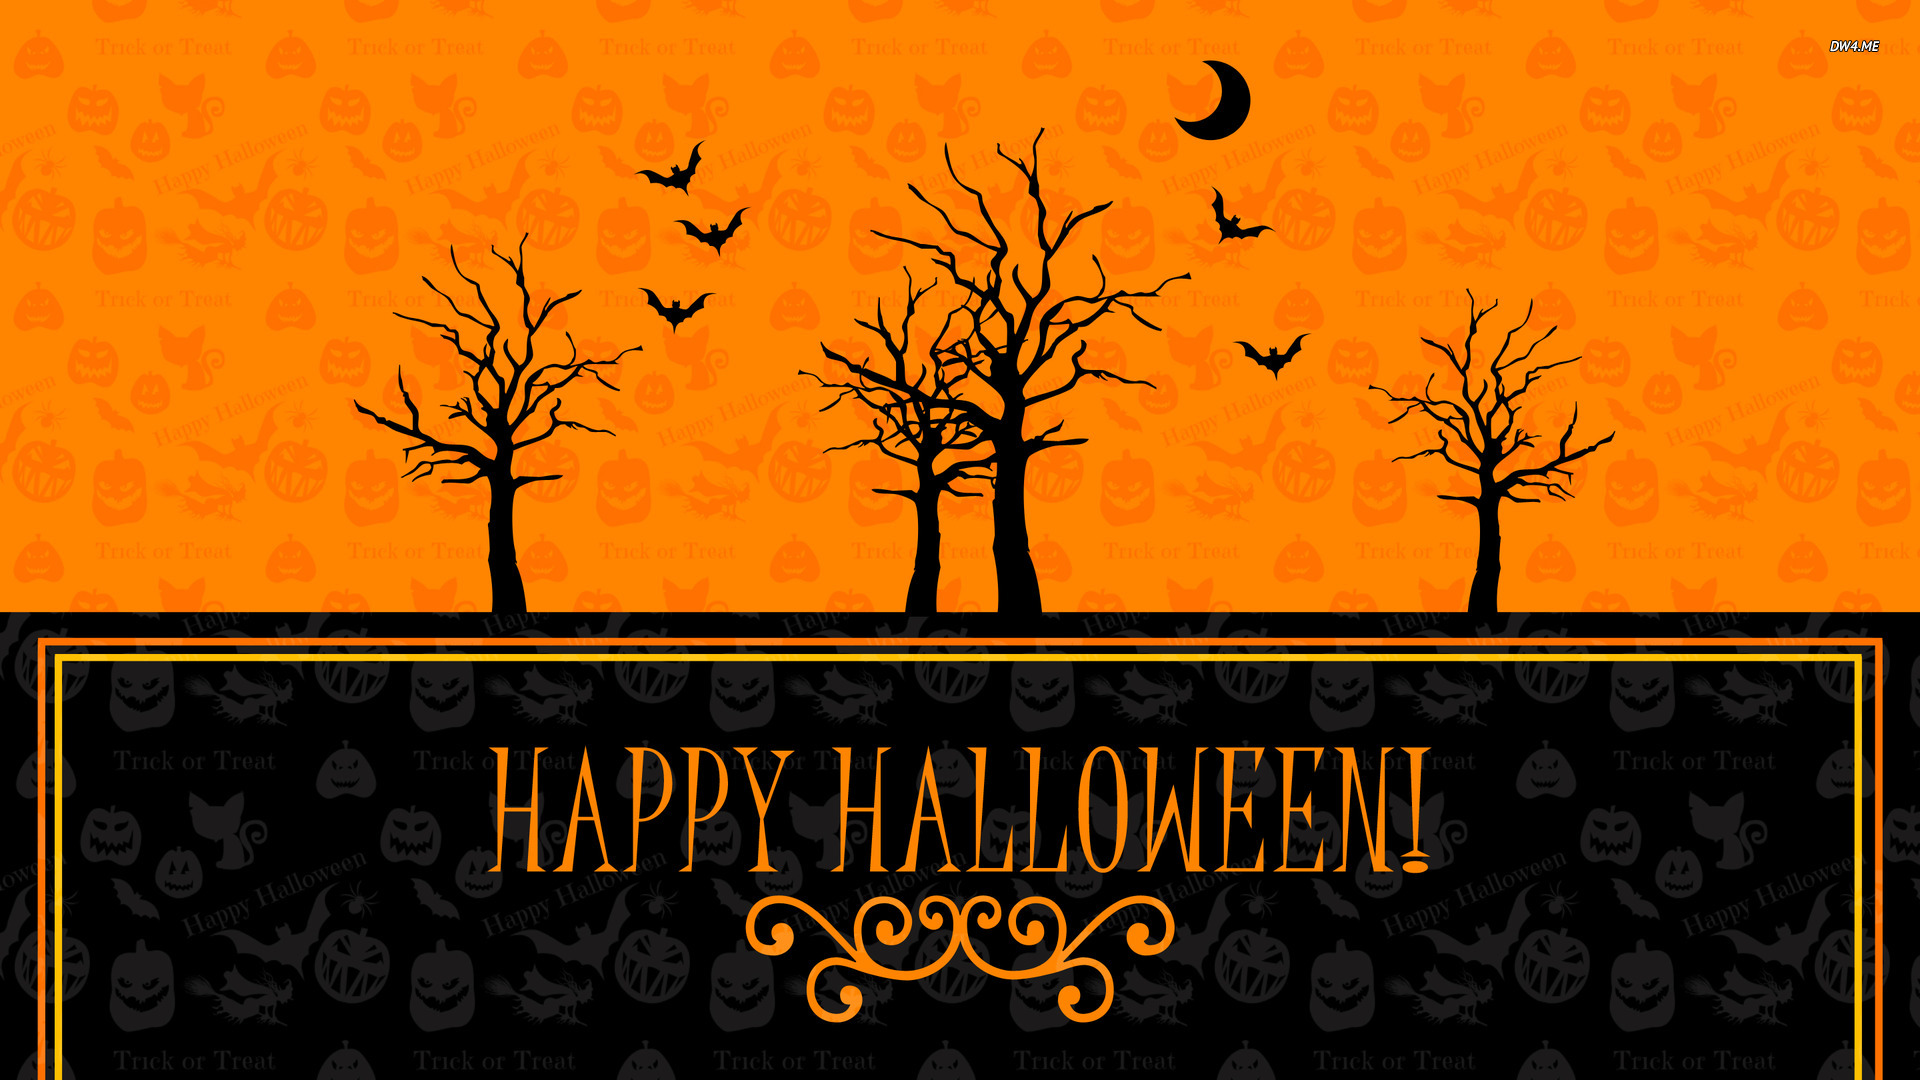 Halloween Haunted Wallpaper For Desktop